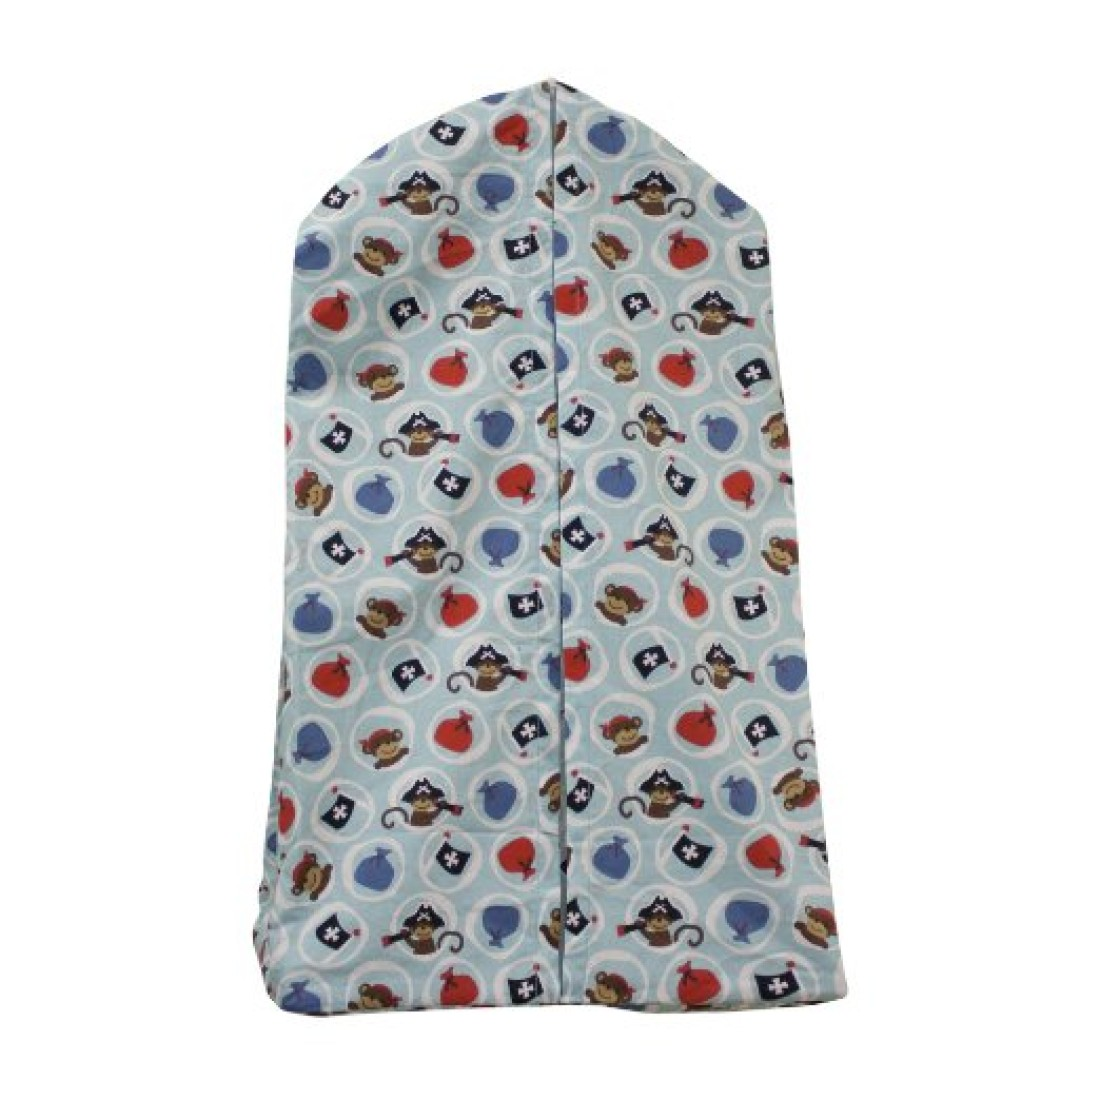 Bedtime Originals Treasure Island Diaper Stacker Diaper Stacker